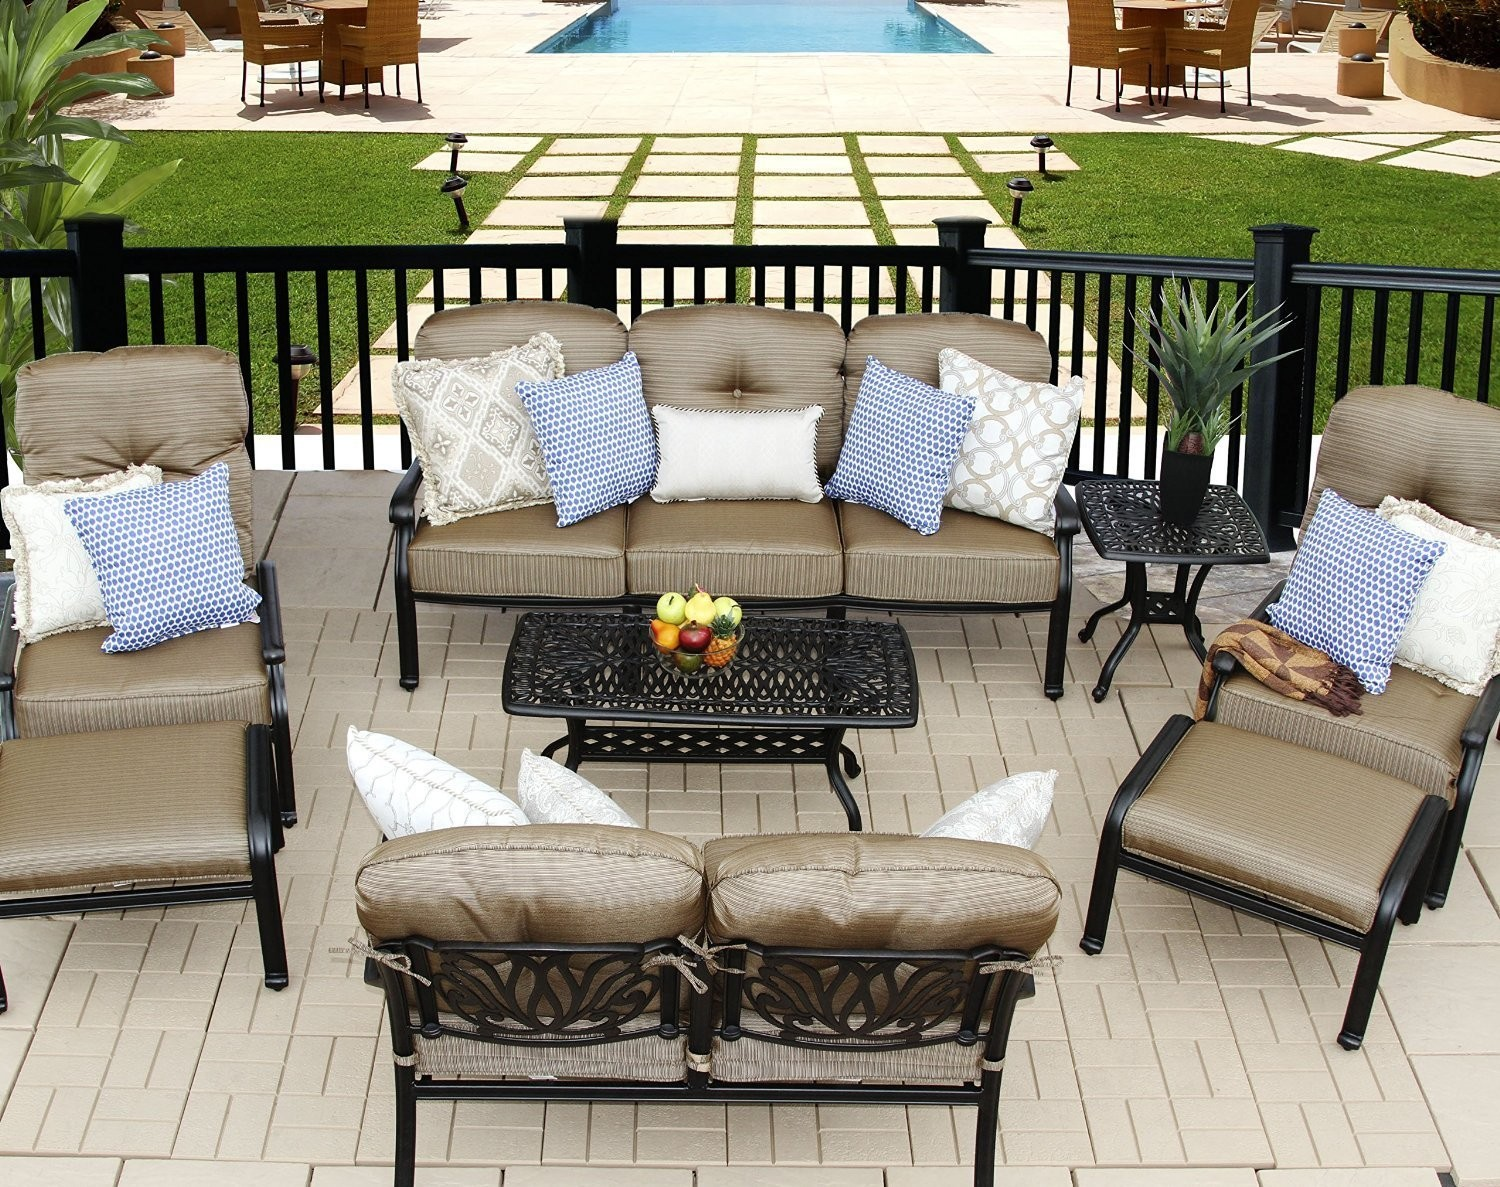 ELIZABETH CAST ALUMINUM POWDER COATED 8PC DEEP SEATING SET WITH ADJUSTABLE CLUB CHAIRS - ANTIQUE BRONZE